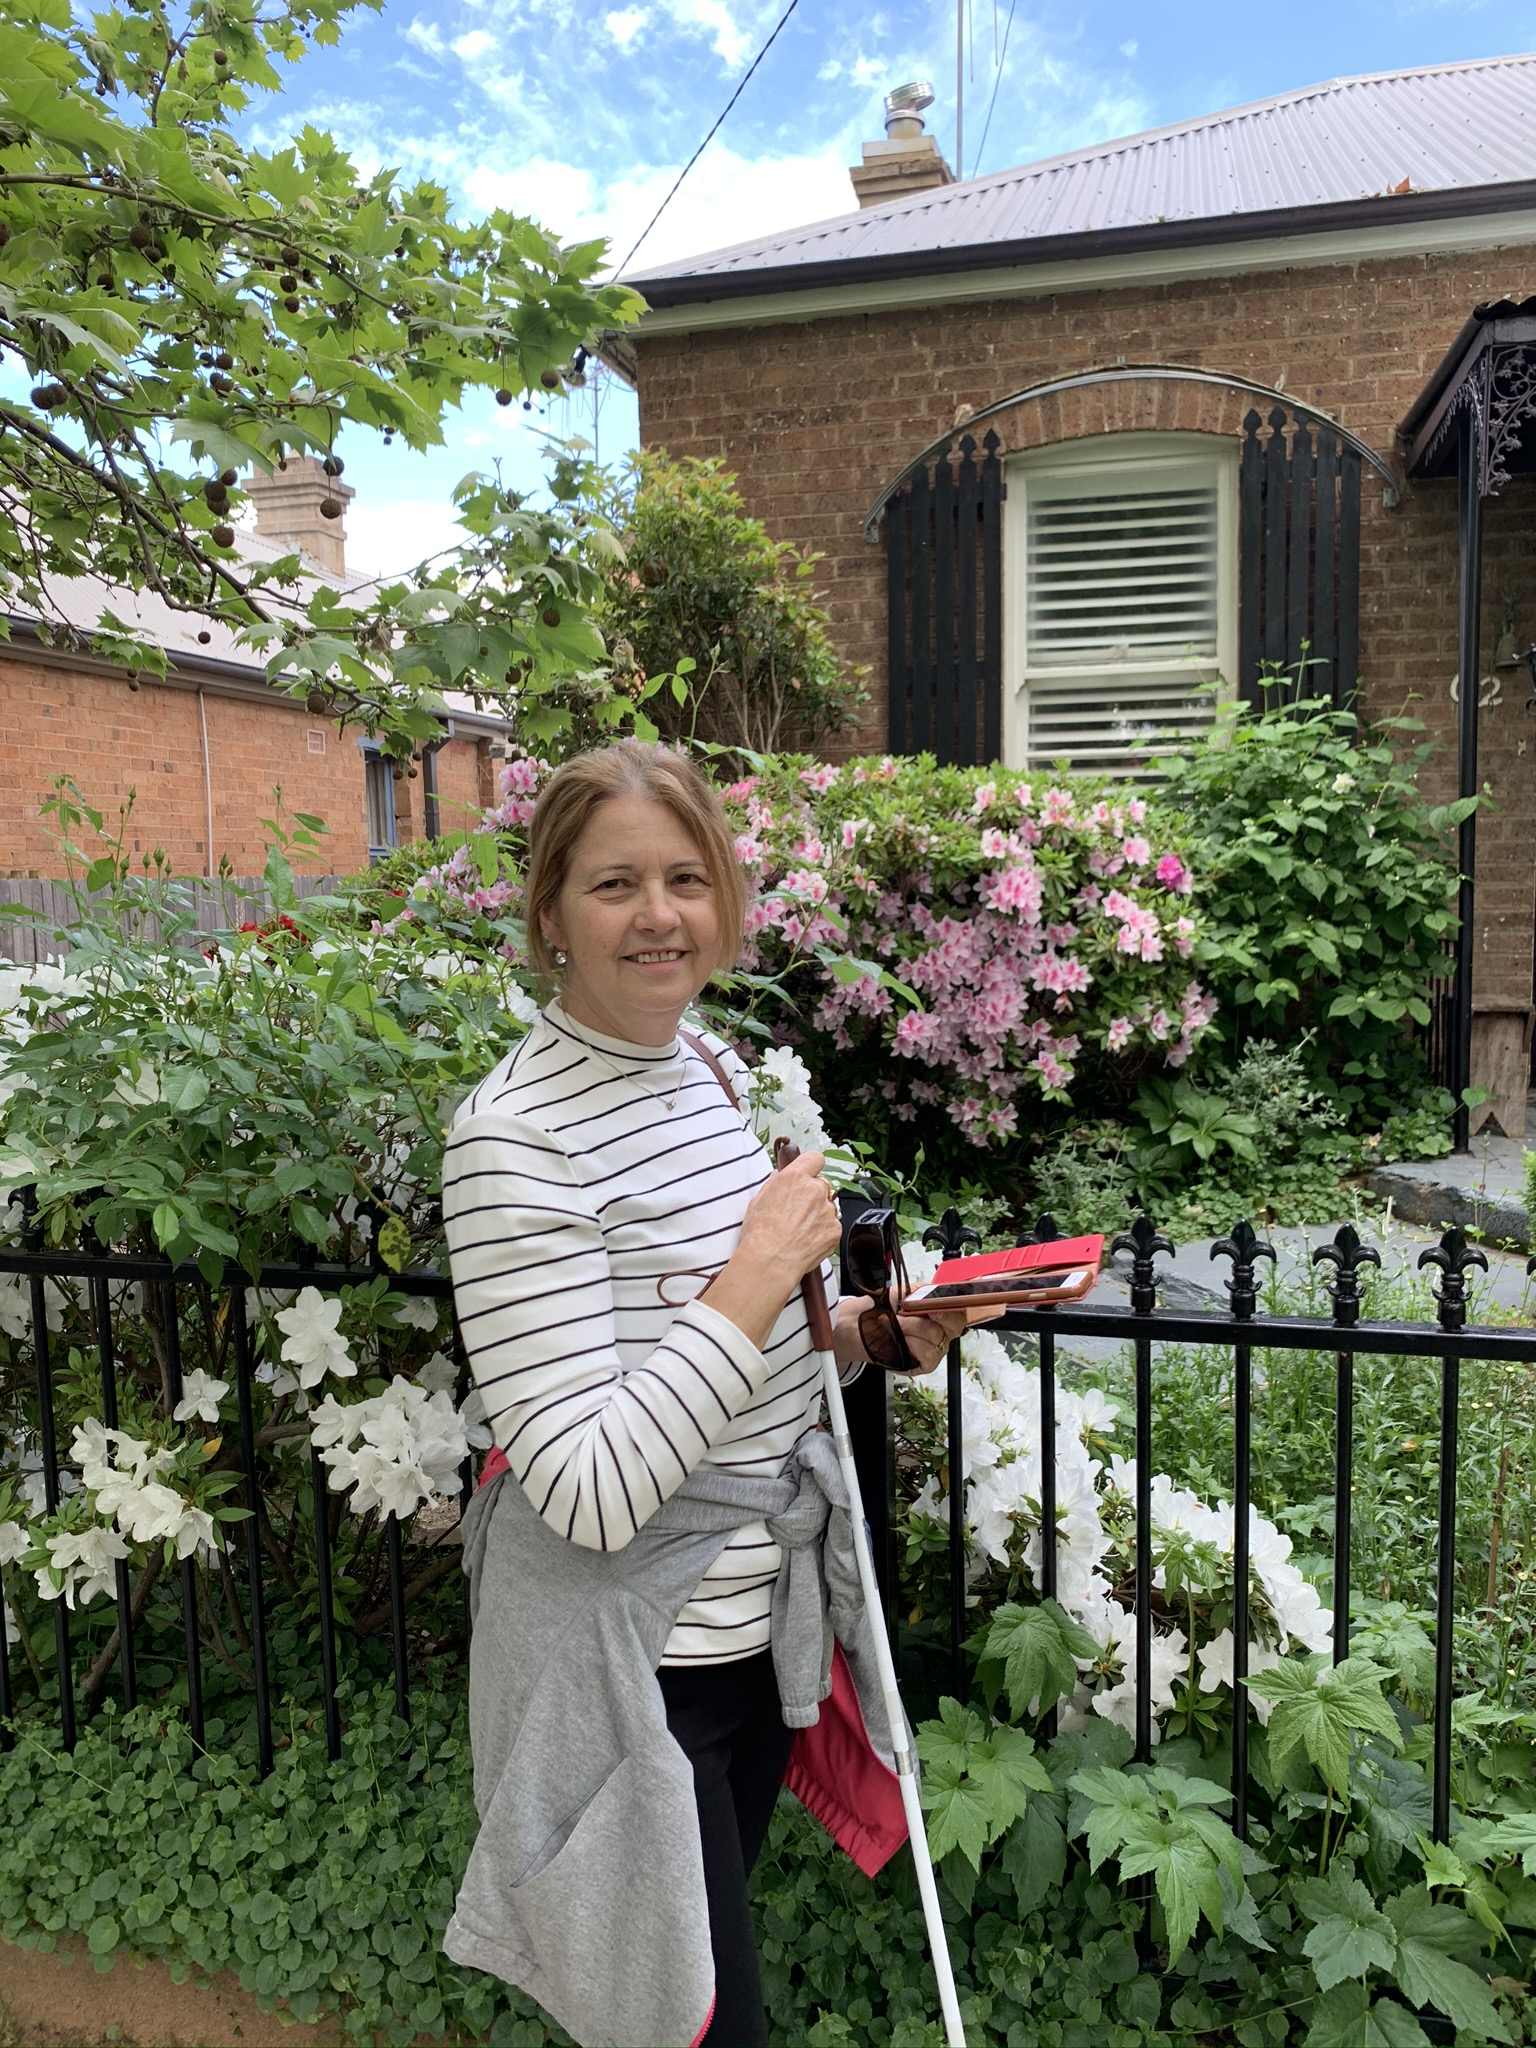 visually impaired lady in front of garden